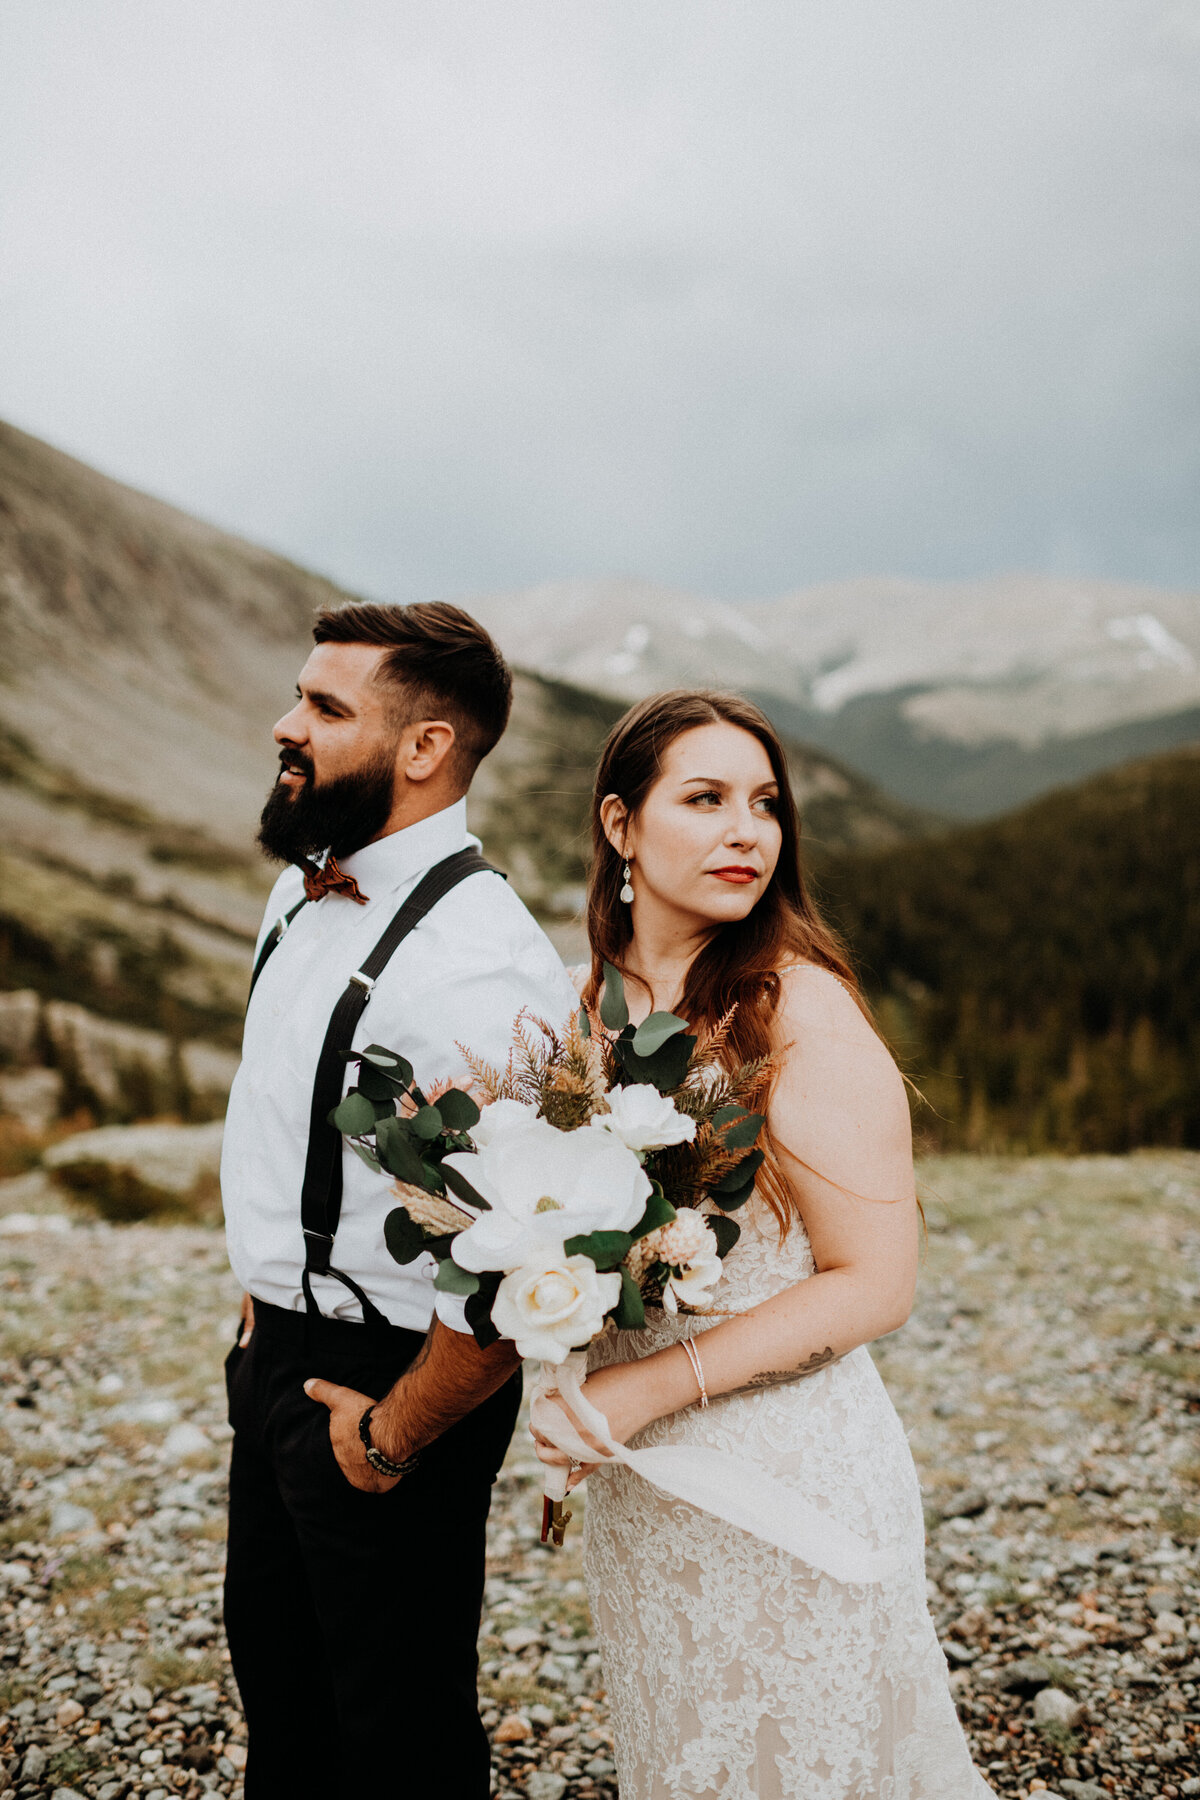 Kimberly & Jared's Elopement - Meraki - 323